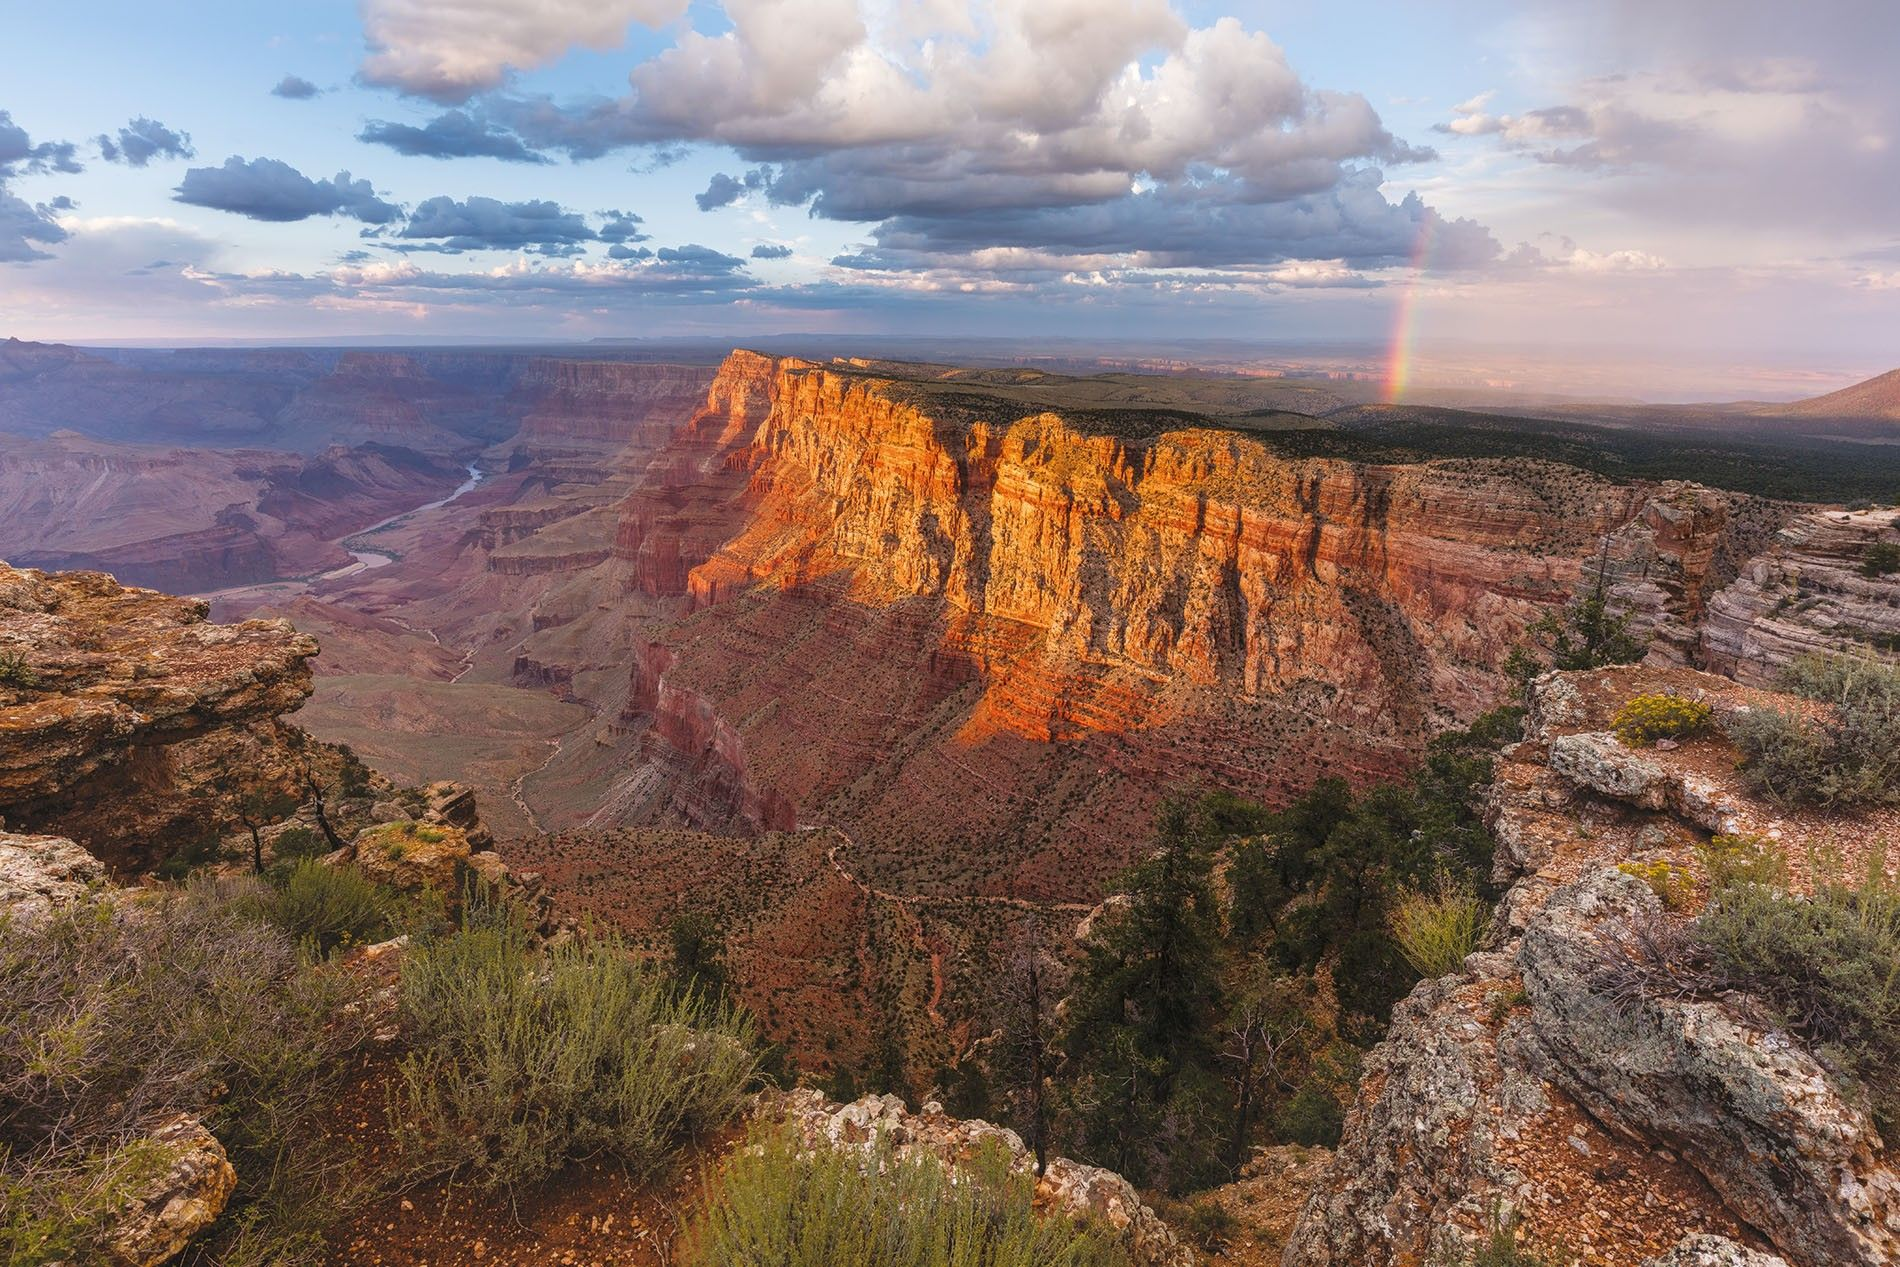 Lipan Point, South Rim of Grand Canyon National Park